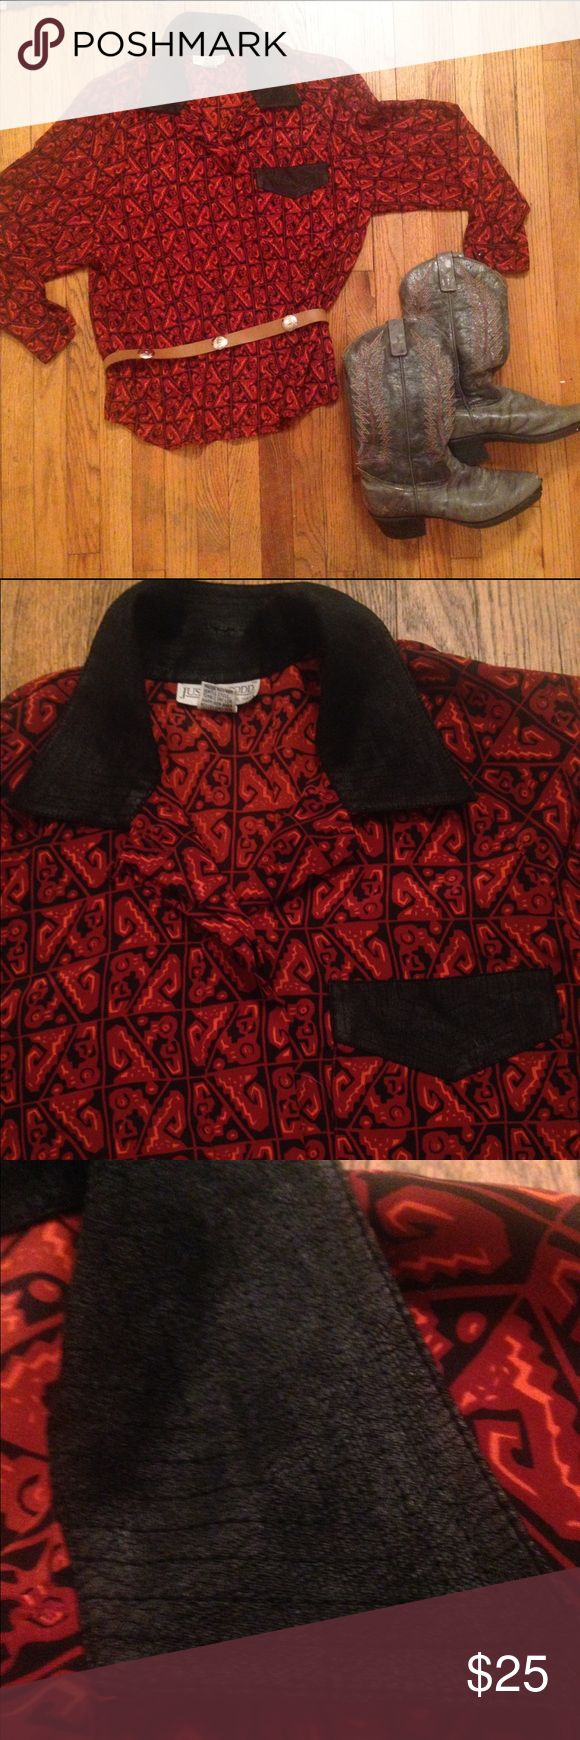 🌵Southwestern Vintage Button Down🌵 Absolutely gorgeous/ one of a kind! Excellent condition. Has removable shoulder pads. 100% polyester.machine wash warm/ tumble dry low. Will fit a medium. Pocket/ collar have a faux leather look Vintage Tops Button Down Shirts